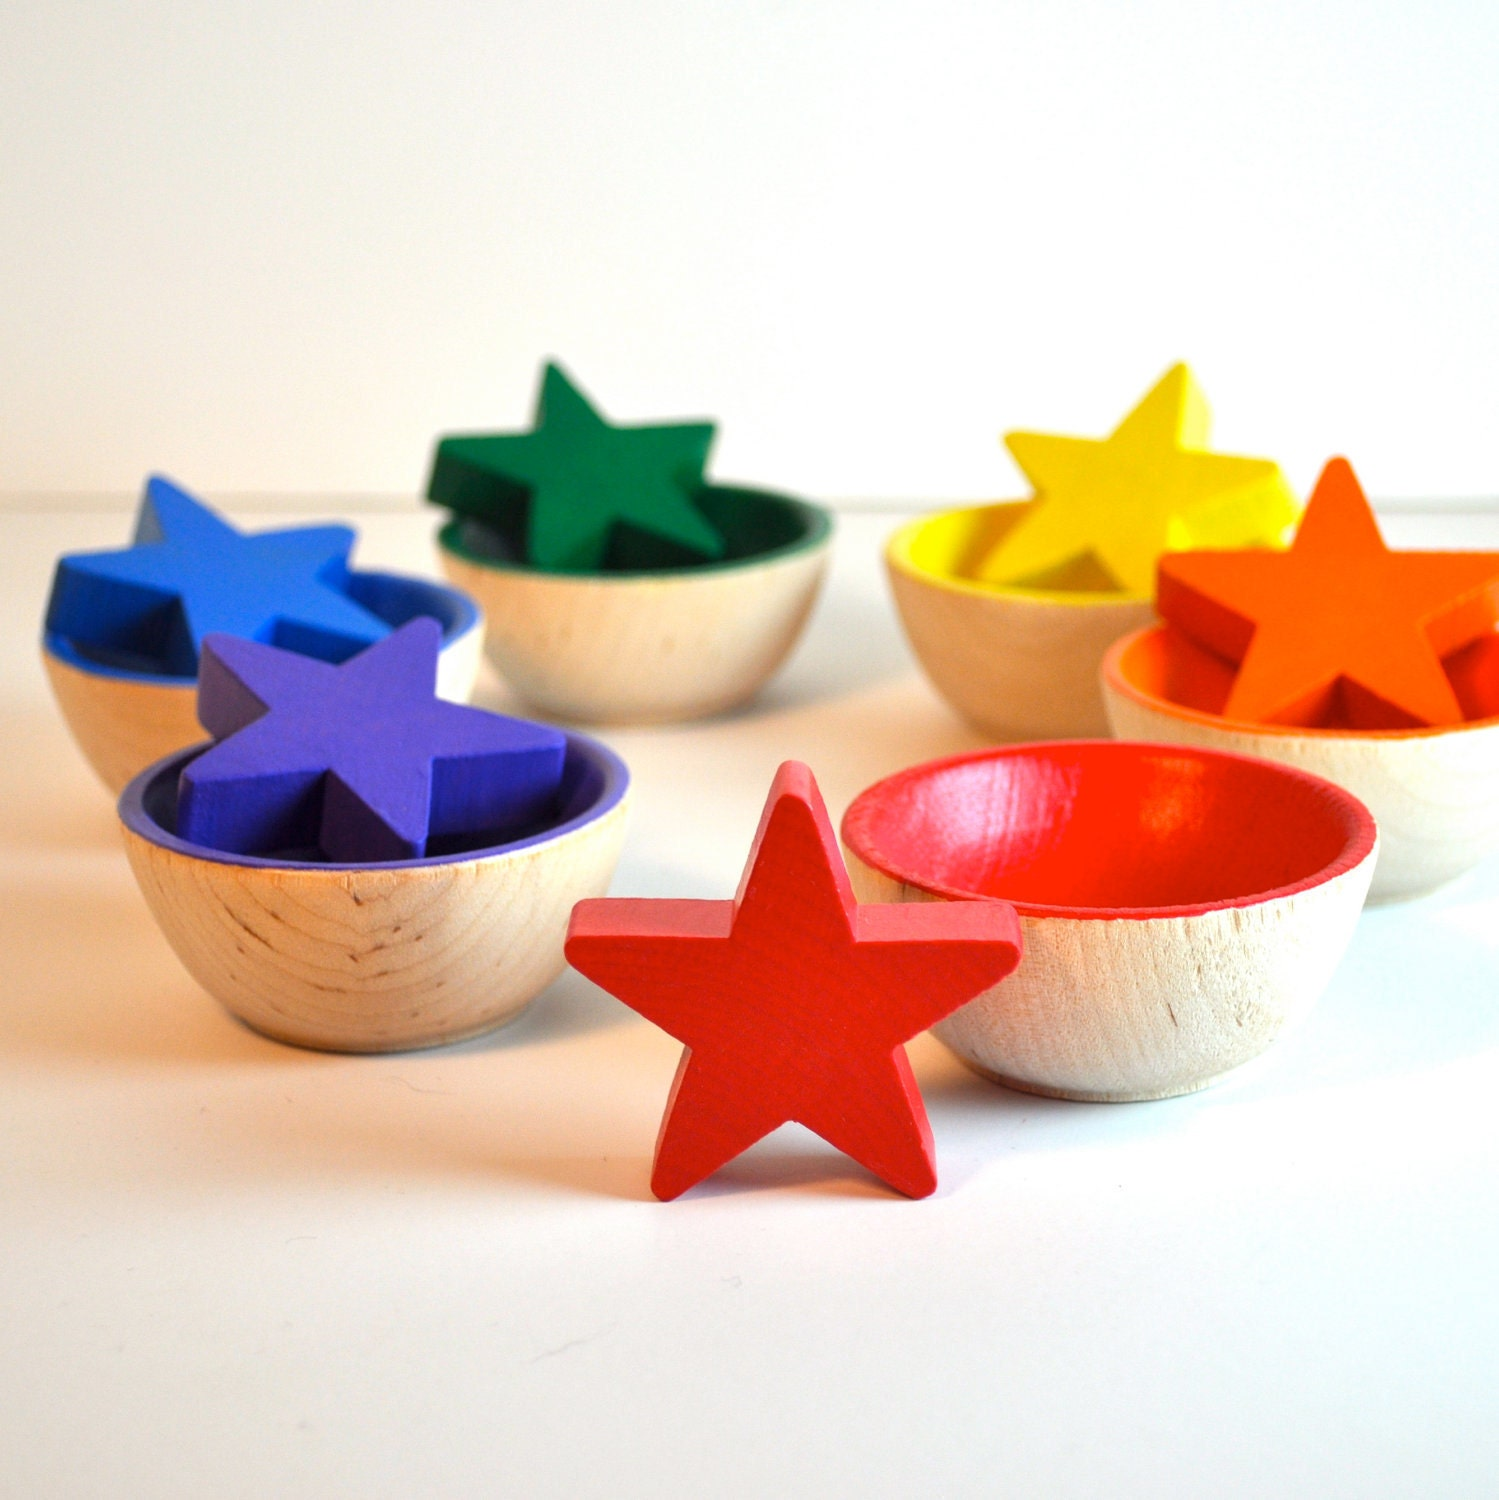 Montessori Toy - Wooden Toy, Sorting  Stars  Educational Toy / Waldorf - theenchantedcupboard - TheEnchantedCupboard